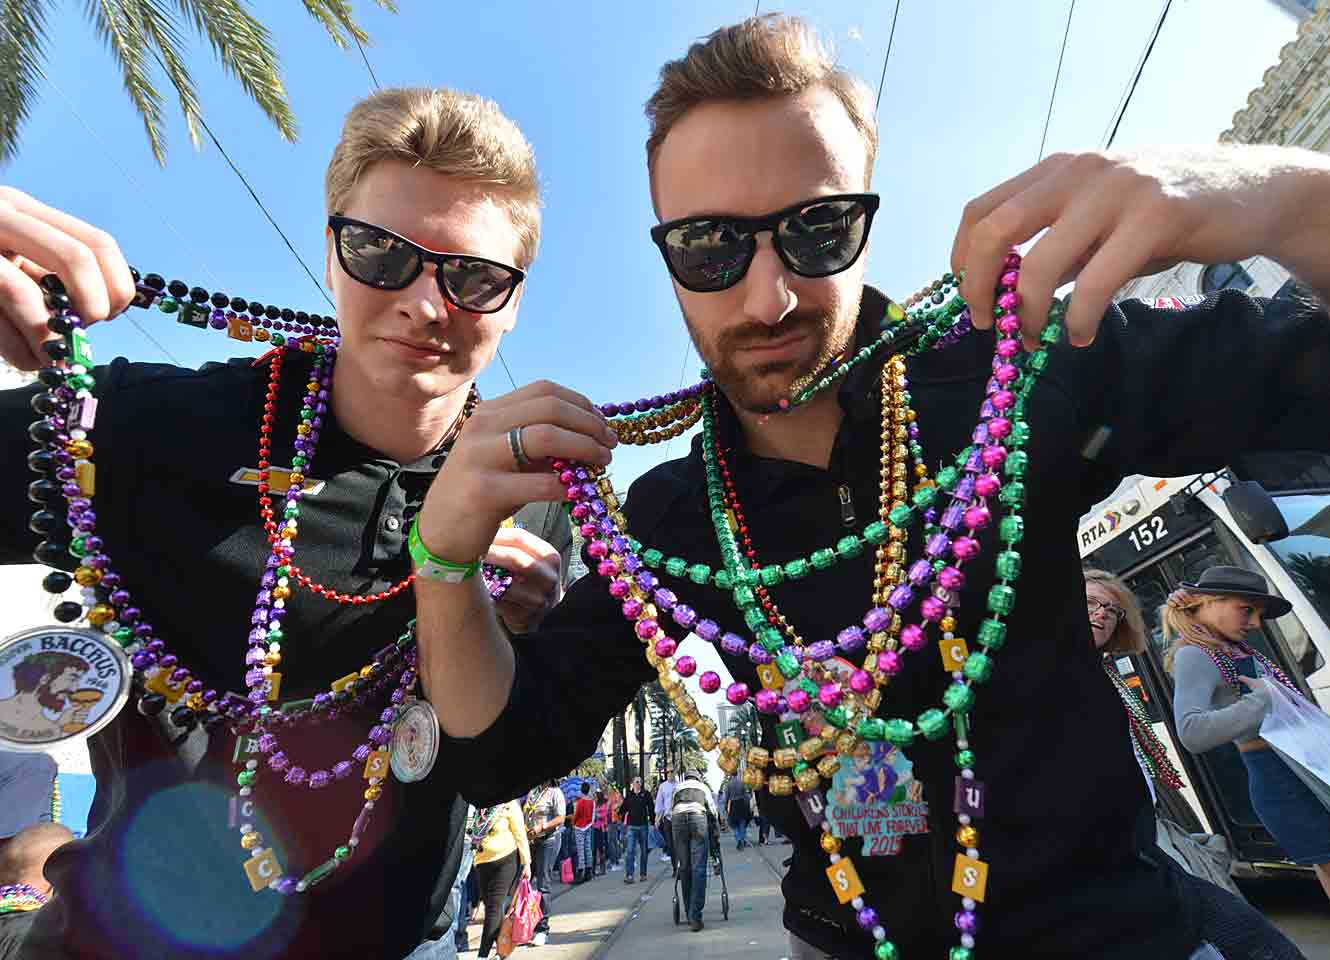 """""""Me and my boy Josef trying to blend in with the locals in the French quarter,"""" Hinchcliffe wrote. """"Any resemblance to Beastie Boys is a complete coincidence."""""""